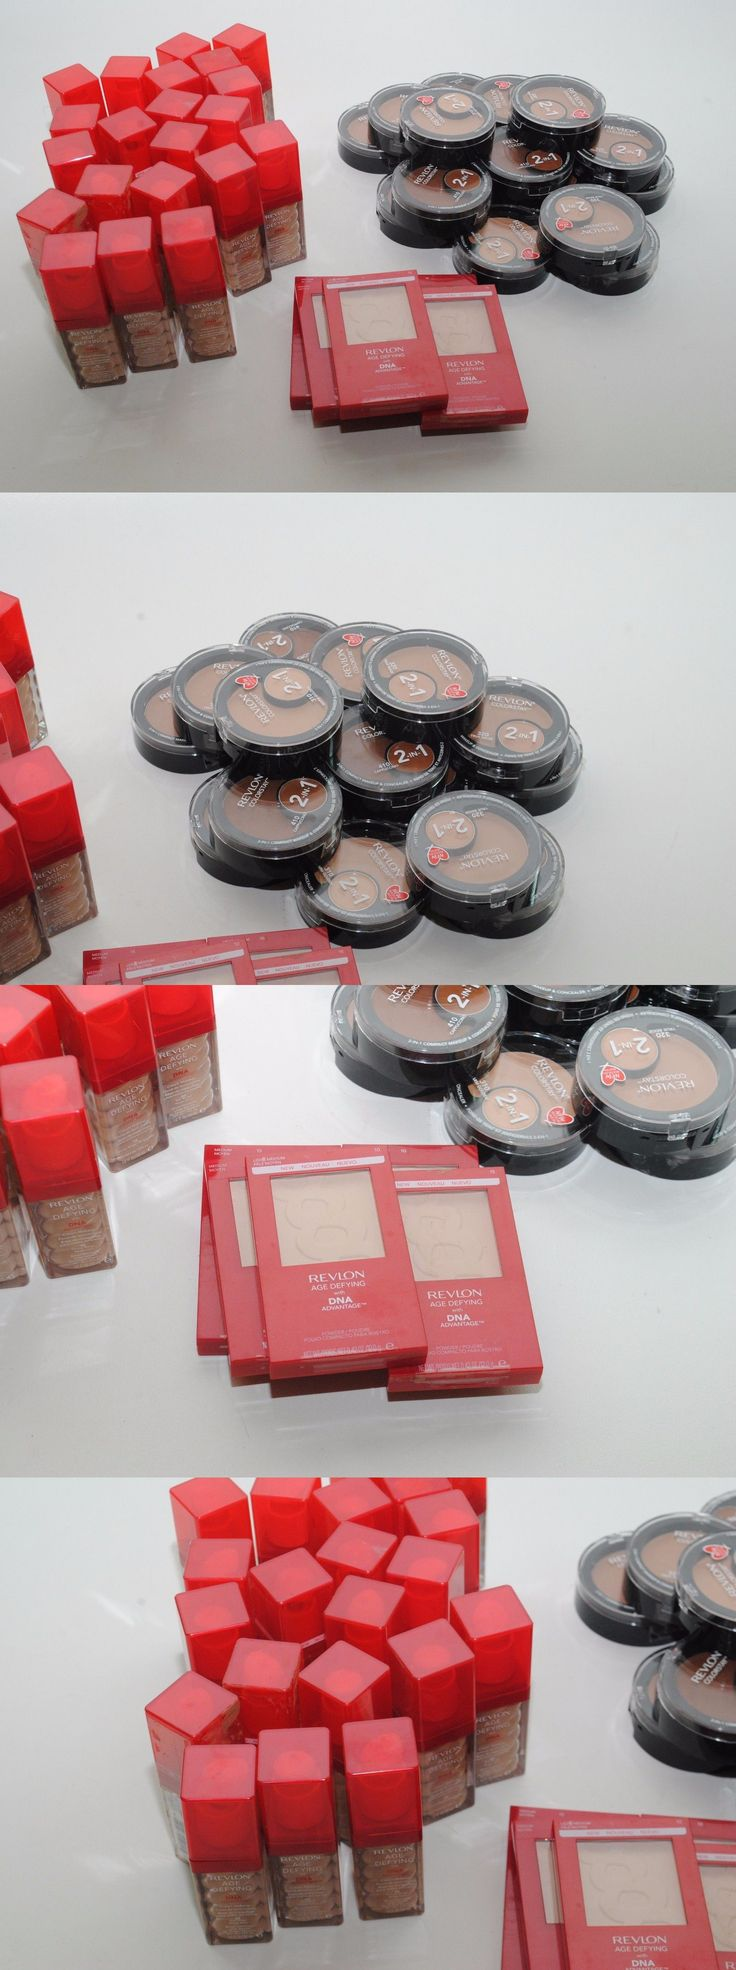 wholesale Makeup: 43X Wholesale Lot Revlon Age Defying Cream Makeup + Powder + Colorstay 2-In-1 -> BUY IT NOW ONLY: $107.99 on eBay!